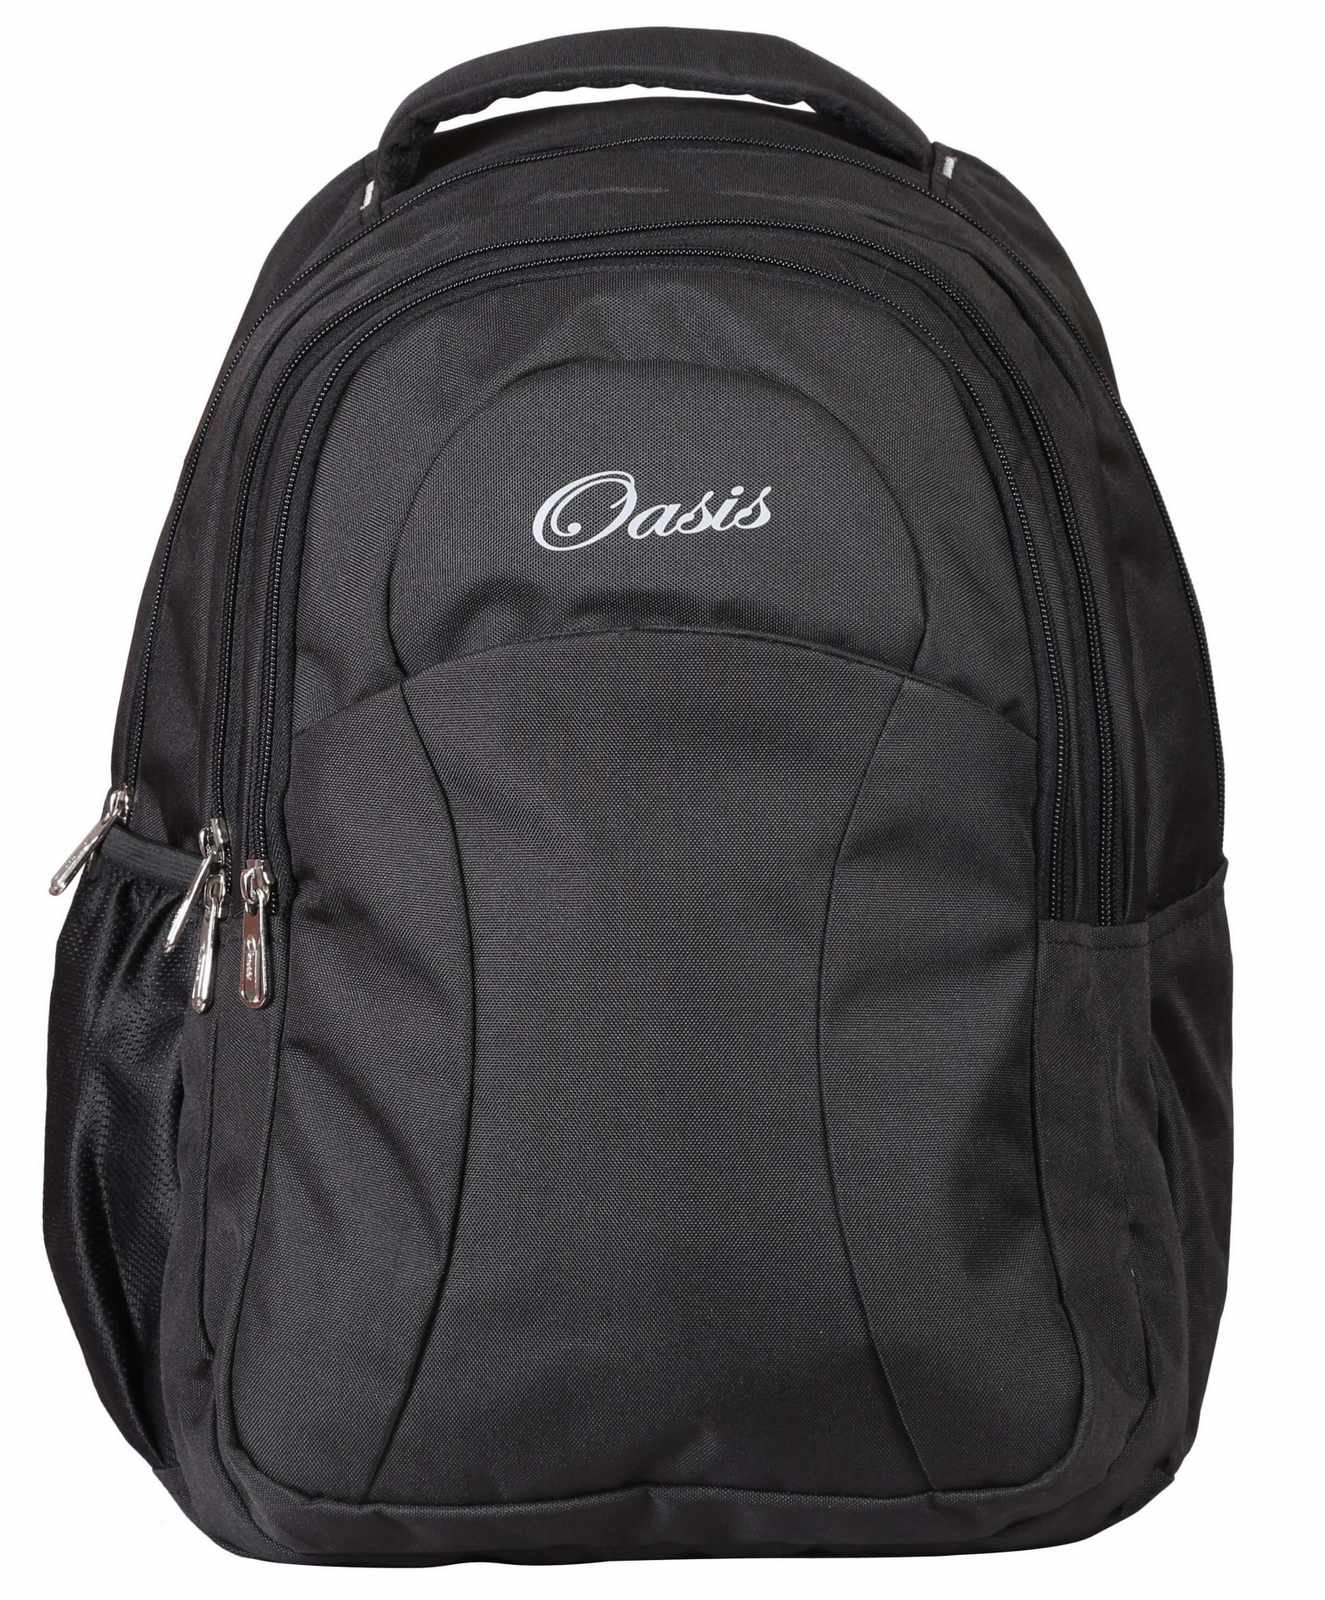 Oasis Travel Bags in Bangalore